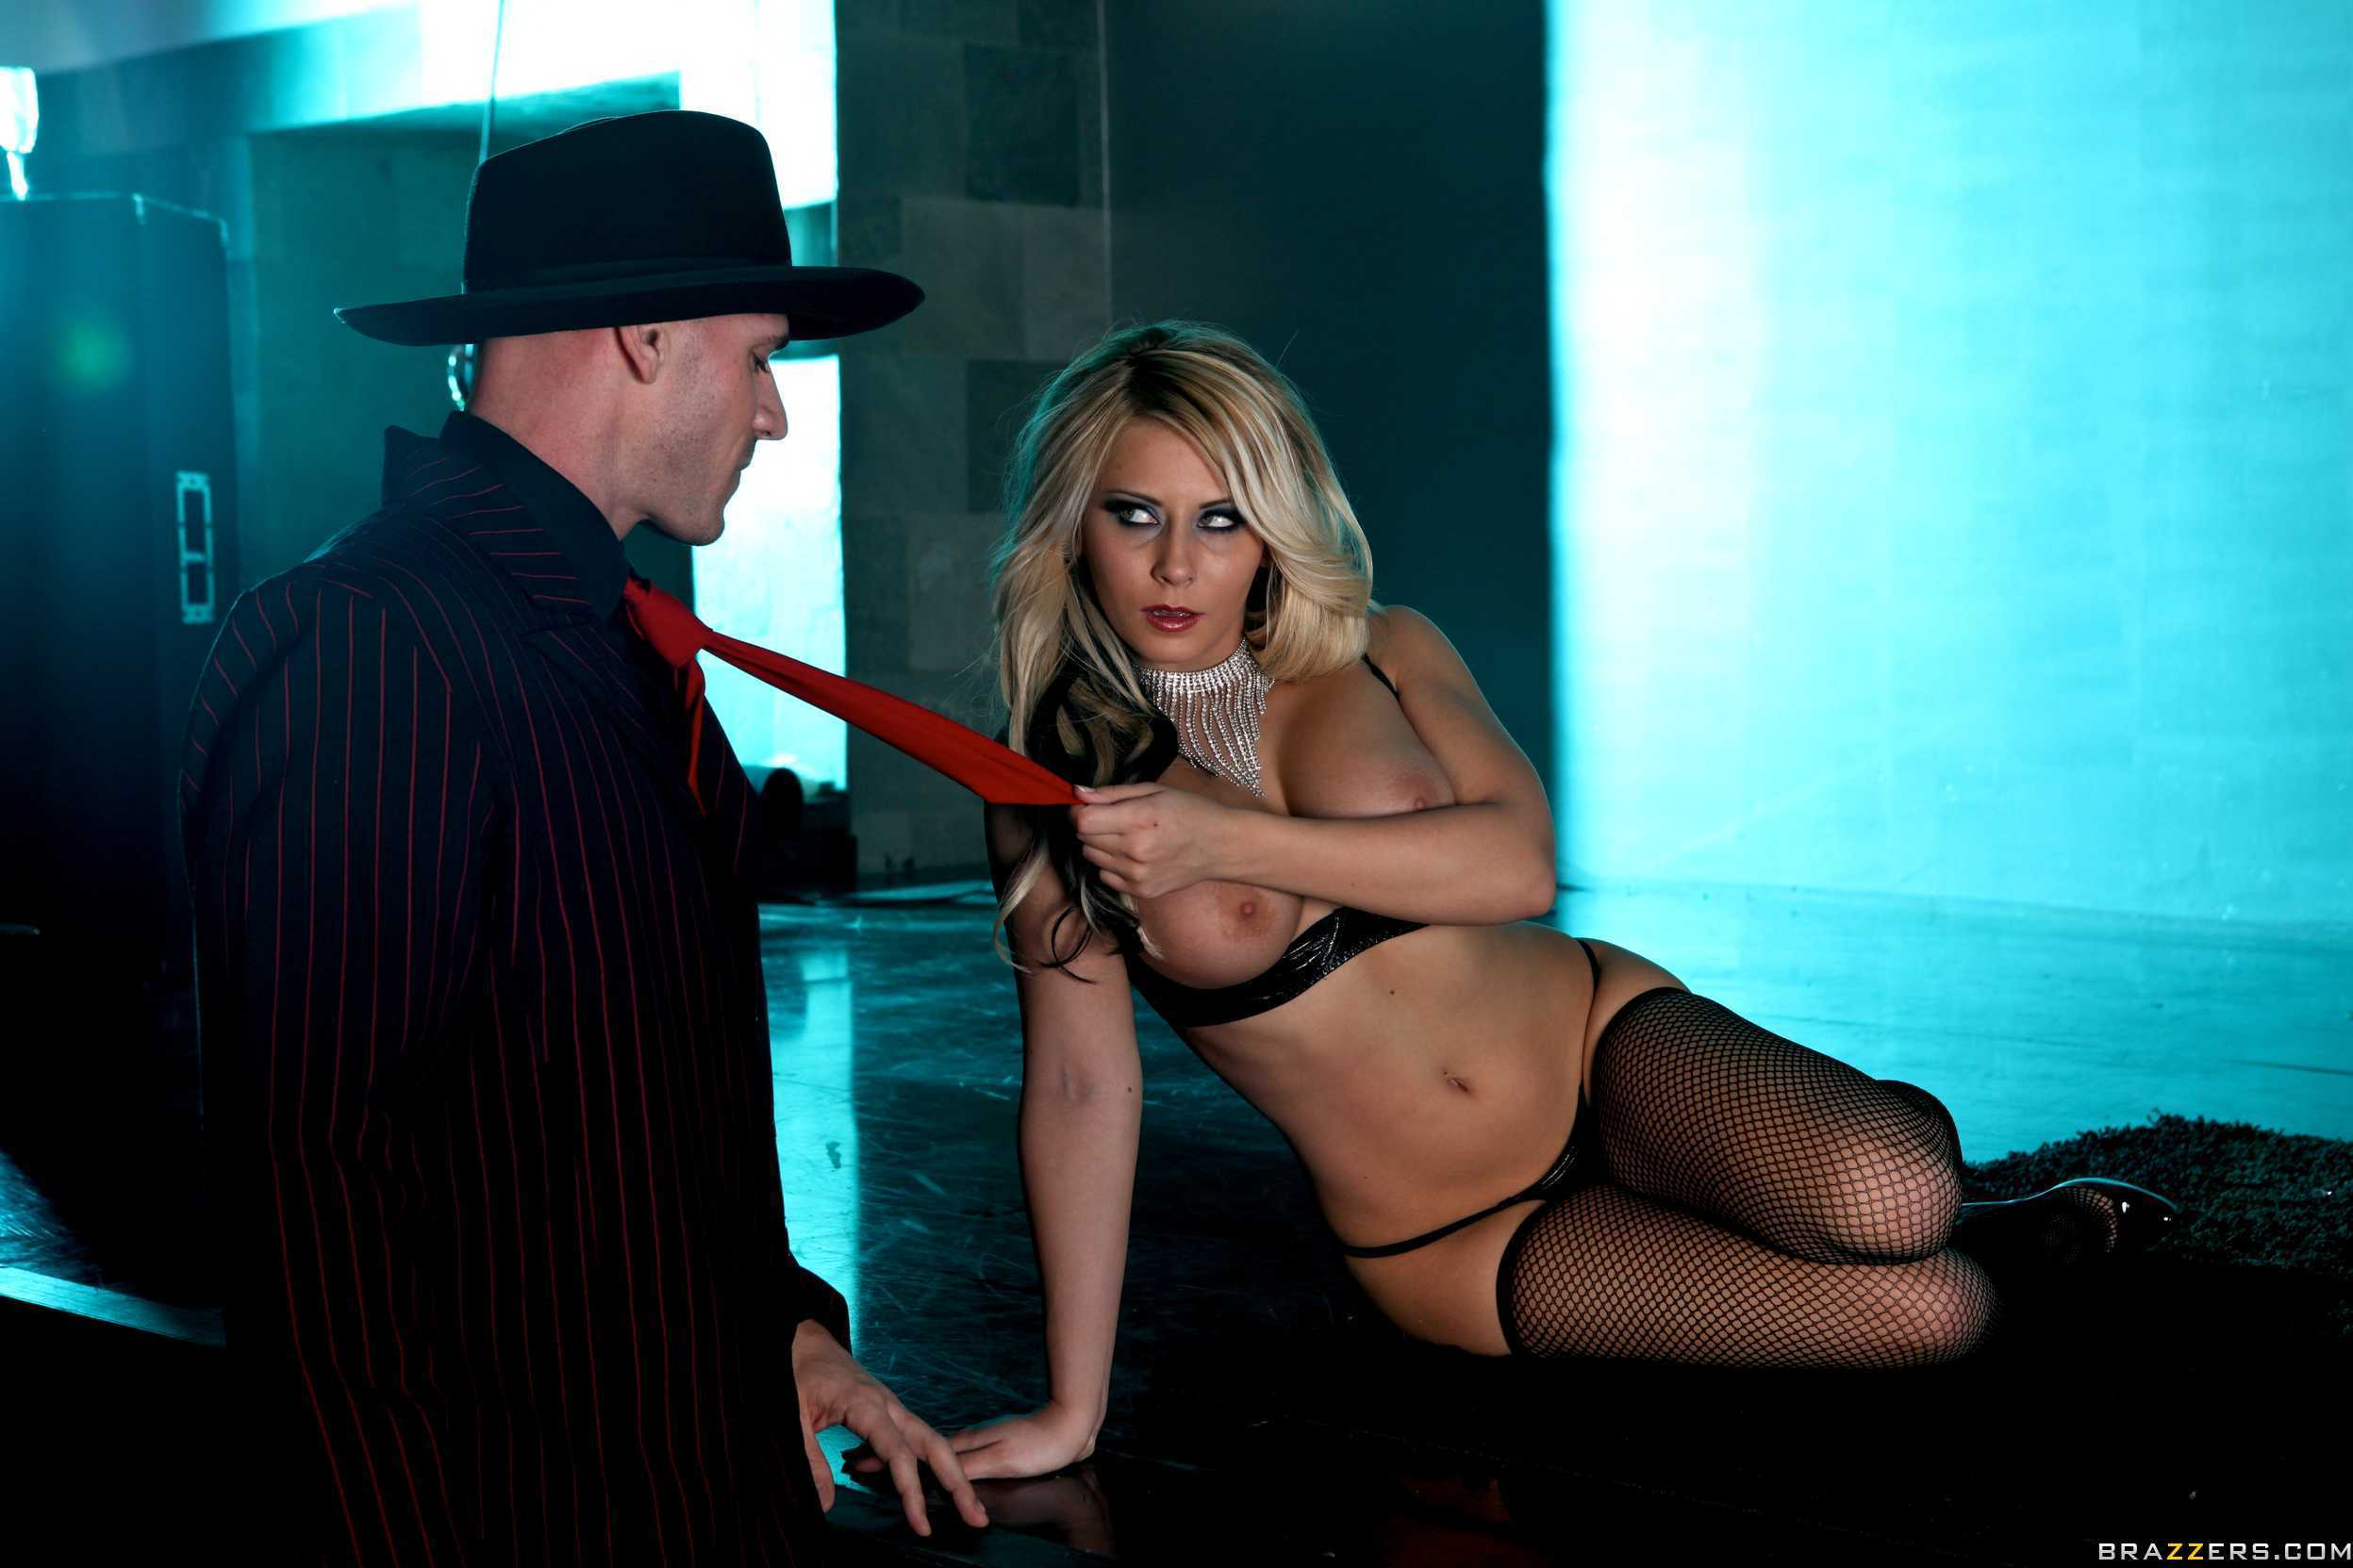 Classy Burlesque Madison Ivy Softcore Posing In Sexy Black Lingerie 608127 Naughty Blonde Babe Gets Her Vagina Thrusted